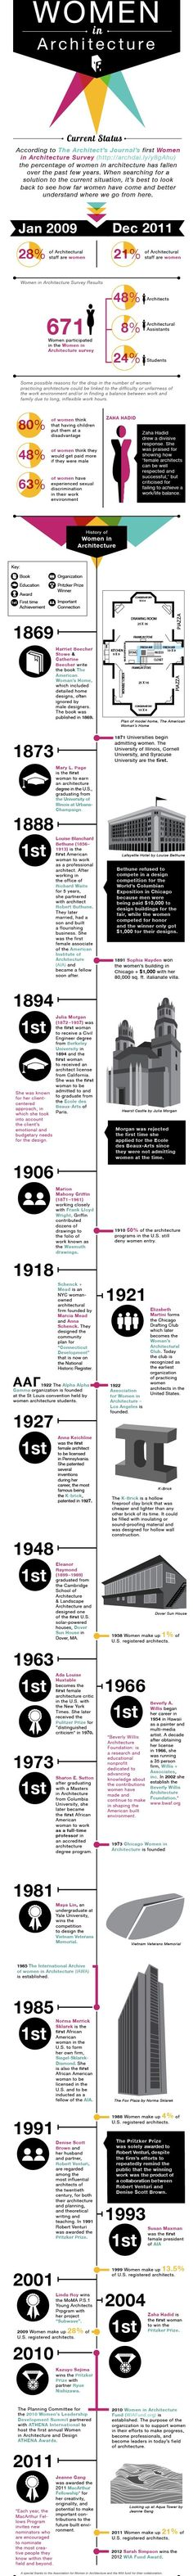 Timeline of notable women in American architecture